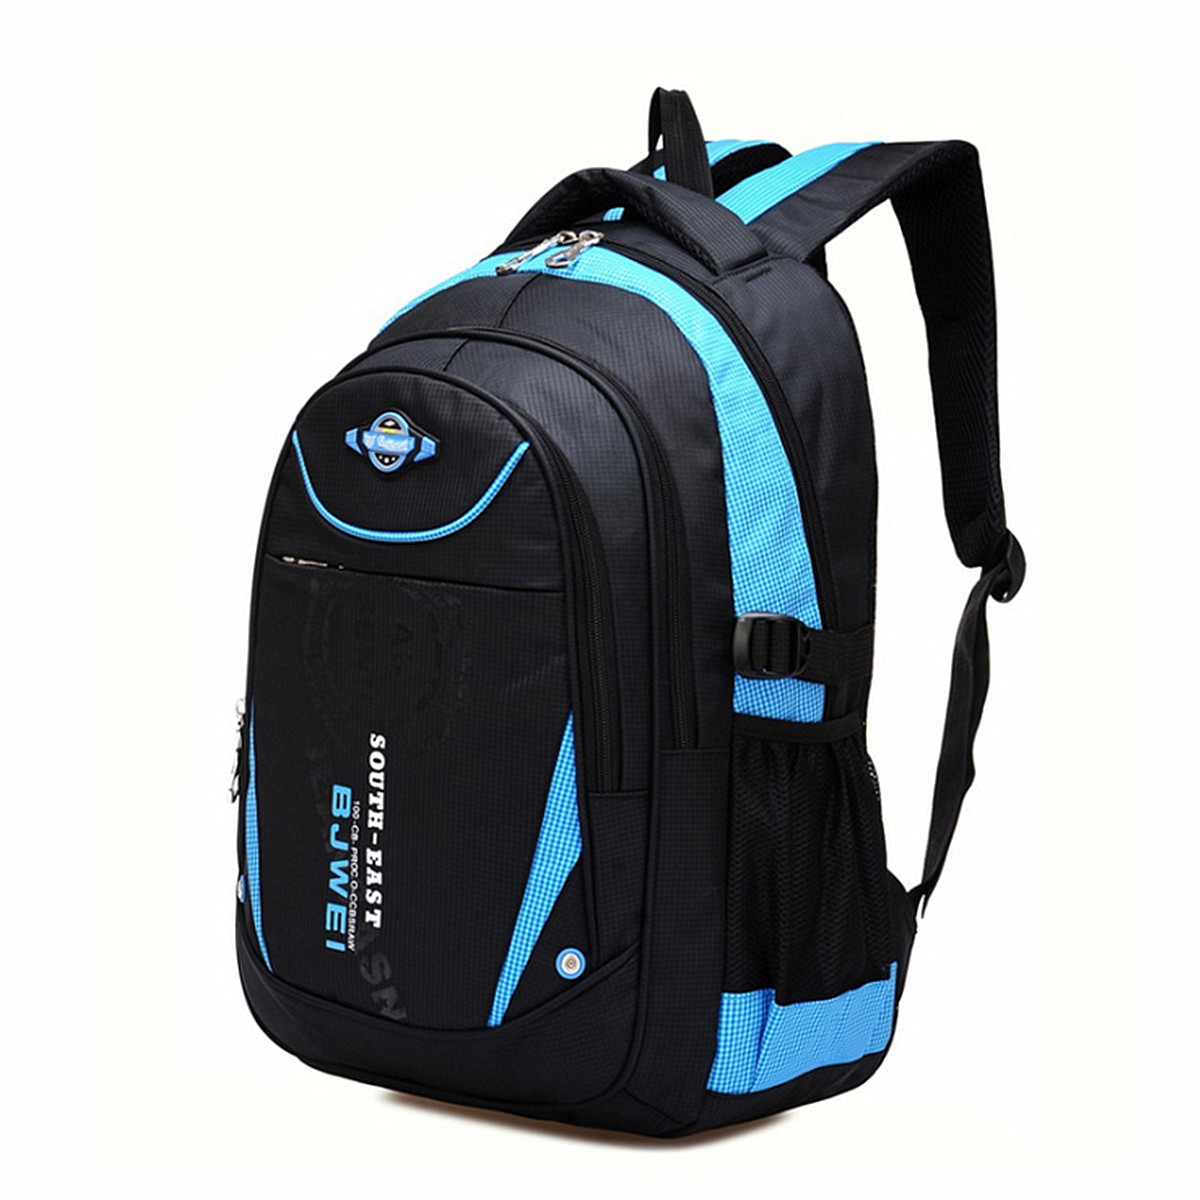 Waterproof Children School Bags Girls Boys Travel Backpack Shoulder Bag Rucksack